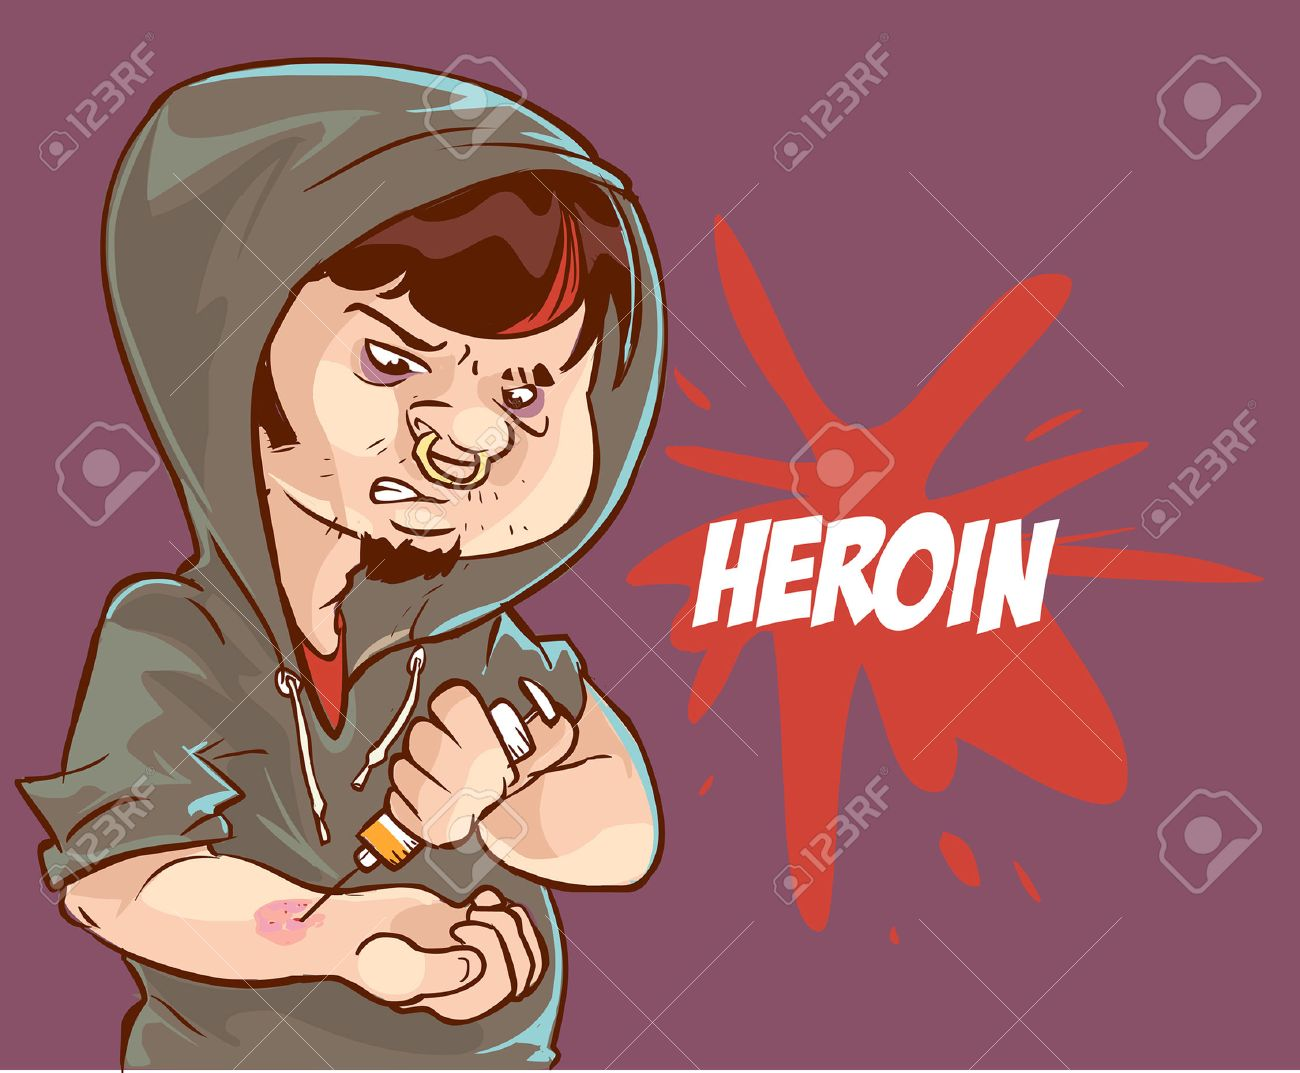 Cartoon vector illustration of a drug addict man addicted to heroin injecting a syringe - 52610598